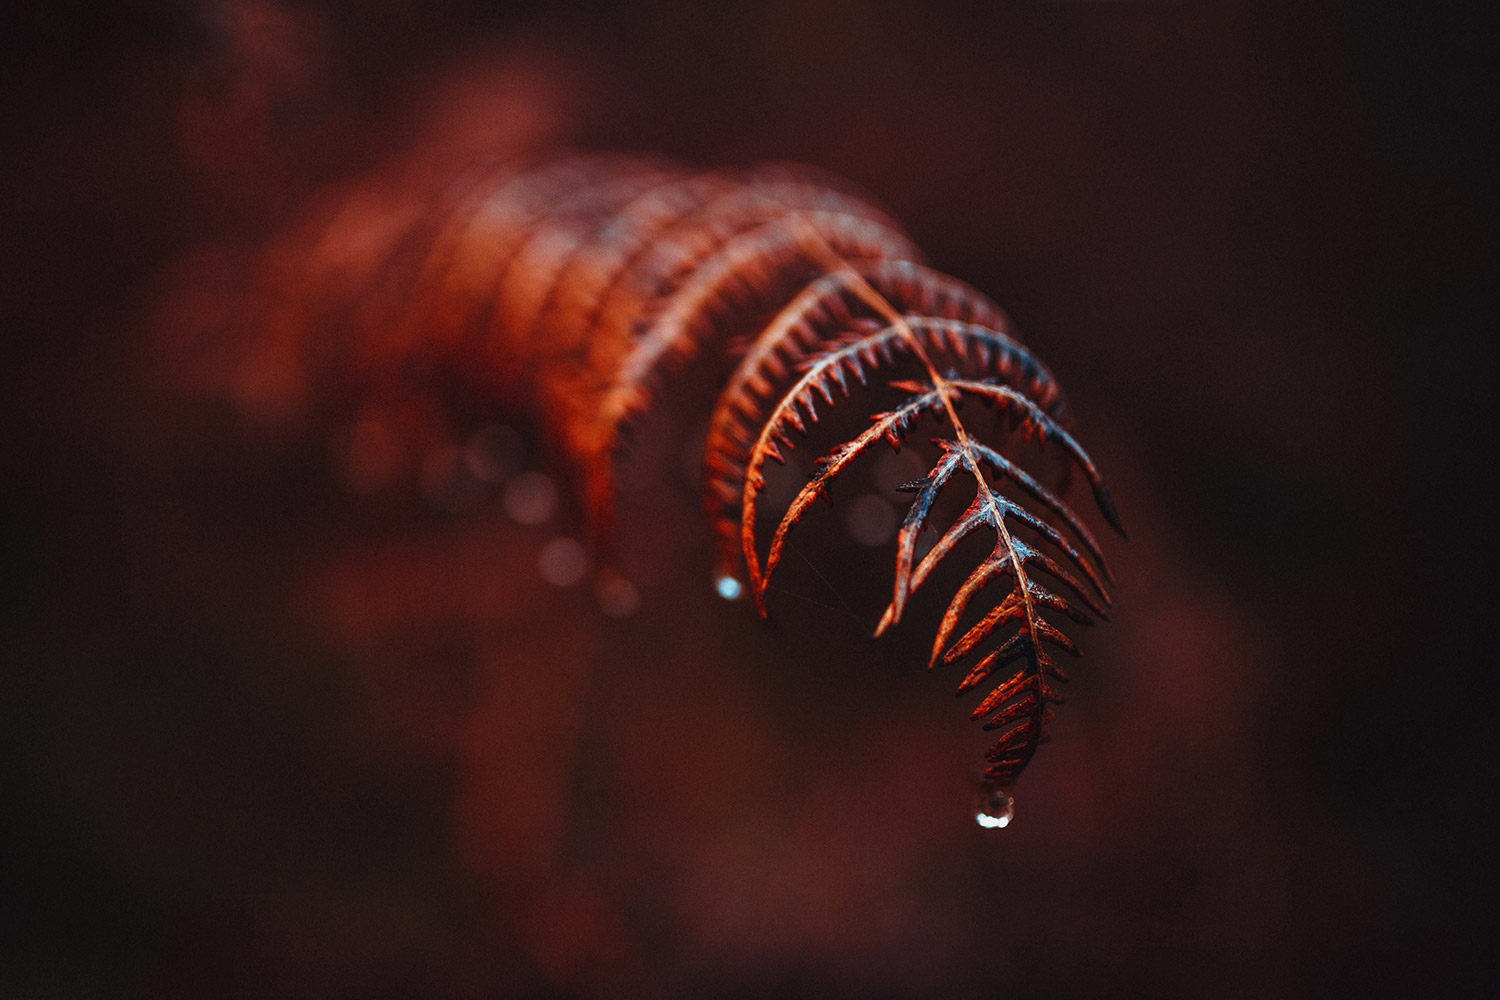 Scarlet, red ferns with frozen dewdrops